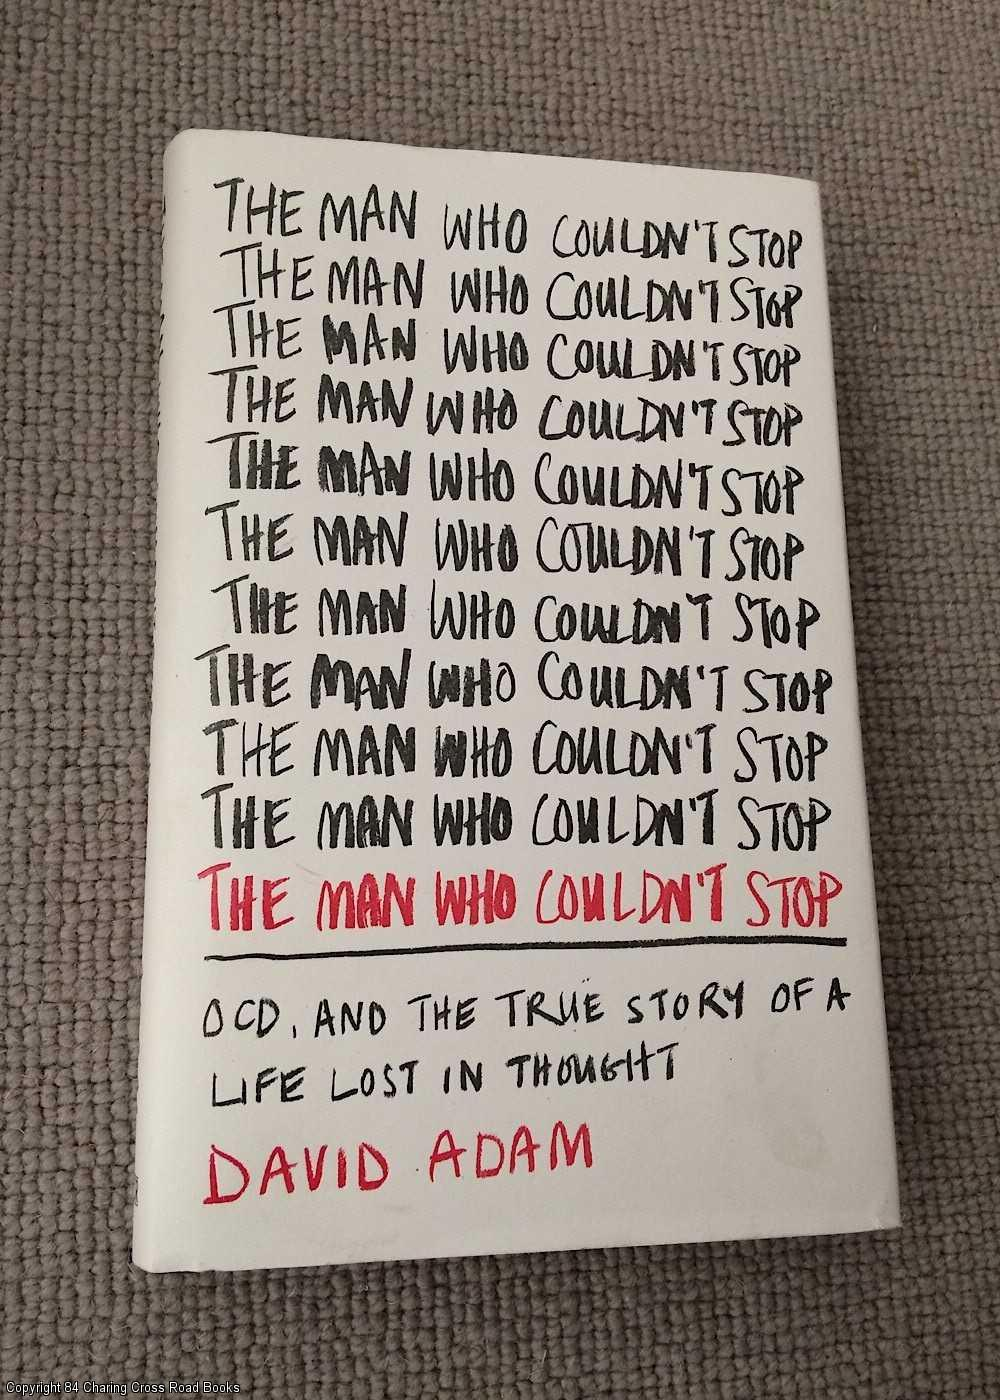 ADAM, DAVID - The Man Who Couldn't Stop: OCD and the true story of a life lost in thought